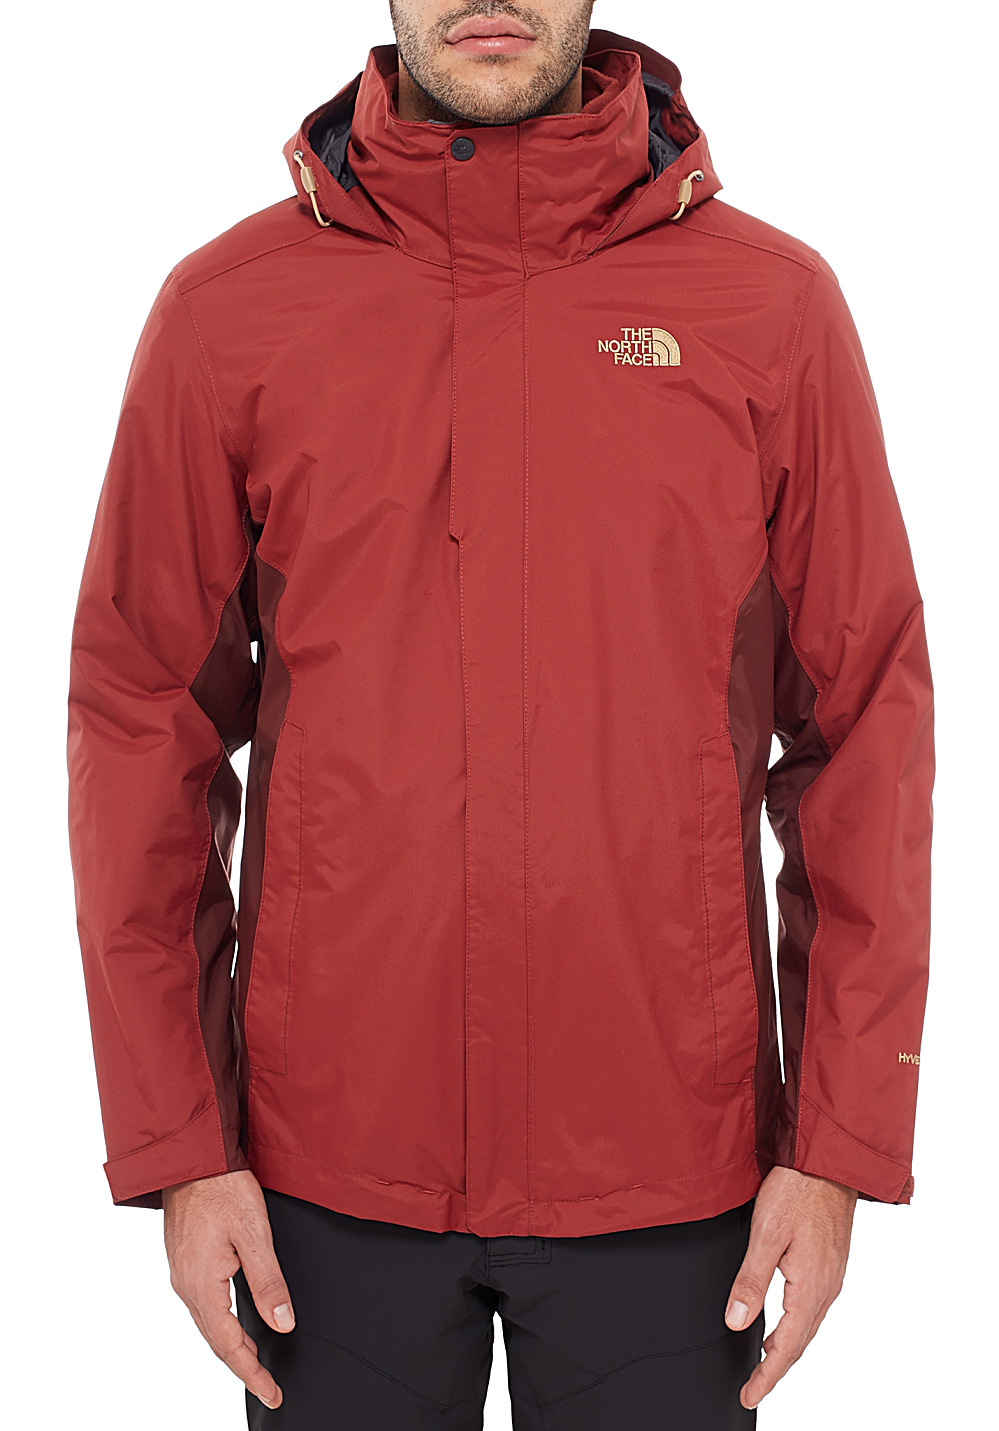 Next. This product is currently out of stock. THE NORTH FACE. Evolution II  Triclimate - Giacca tecnica per Uomo 4ed196ae9077